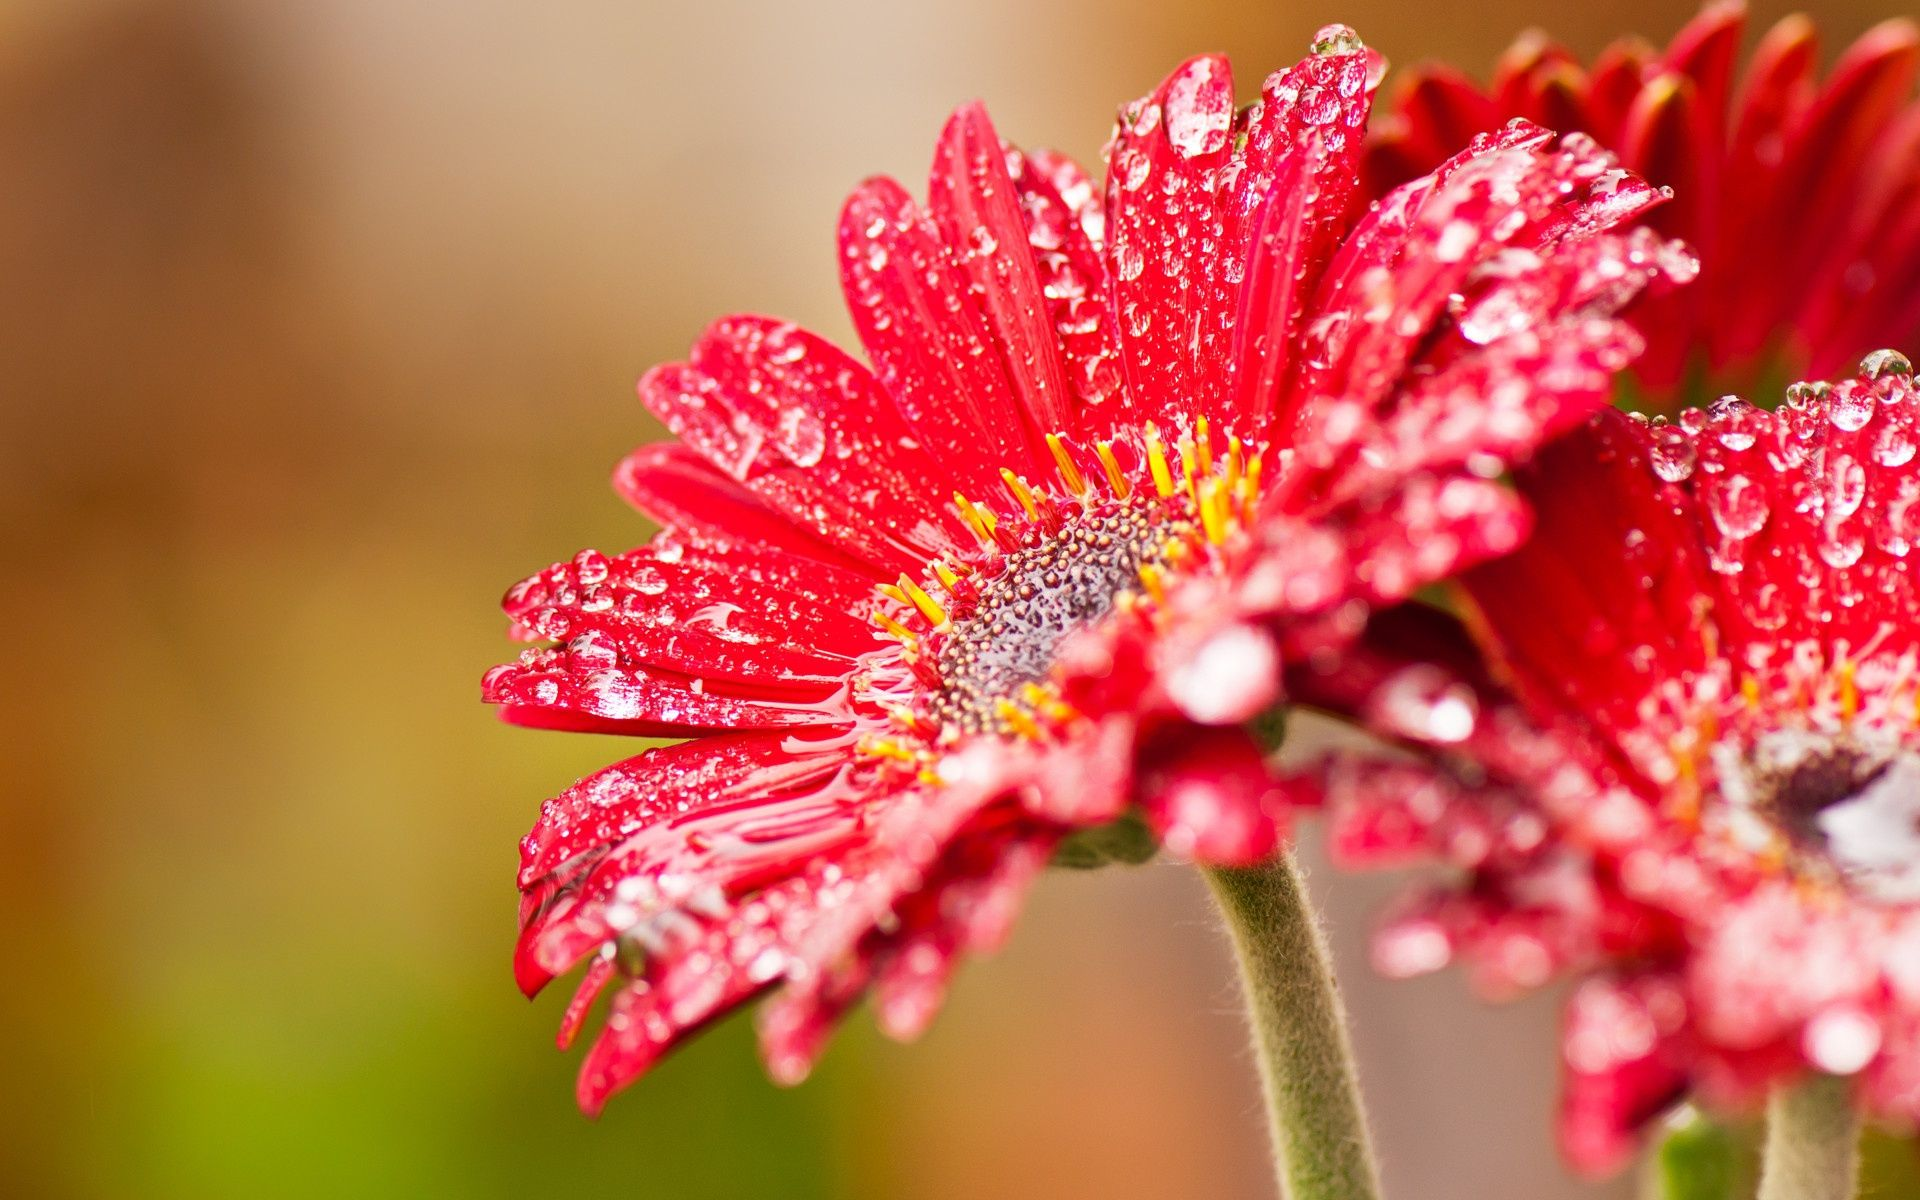 Lovely Daisies Beautiful Flowers Wallpapers Red Flower Wallpaper Flower Wallpaper